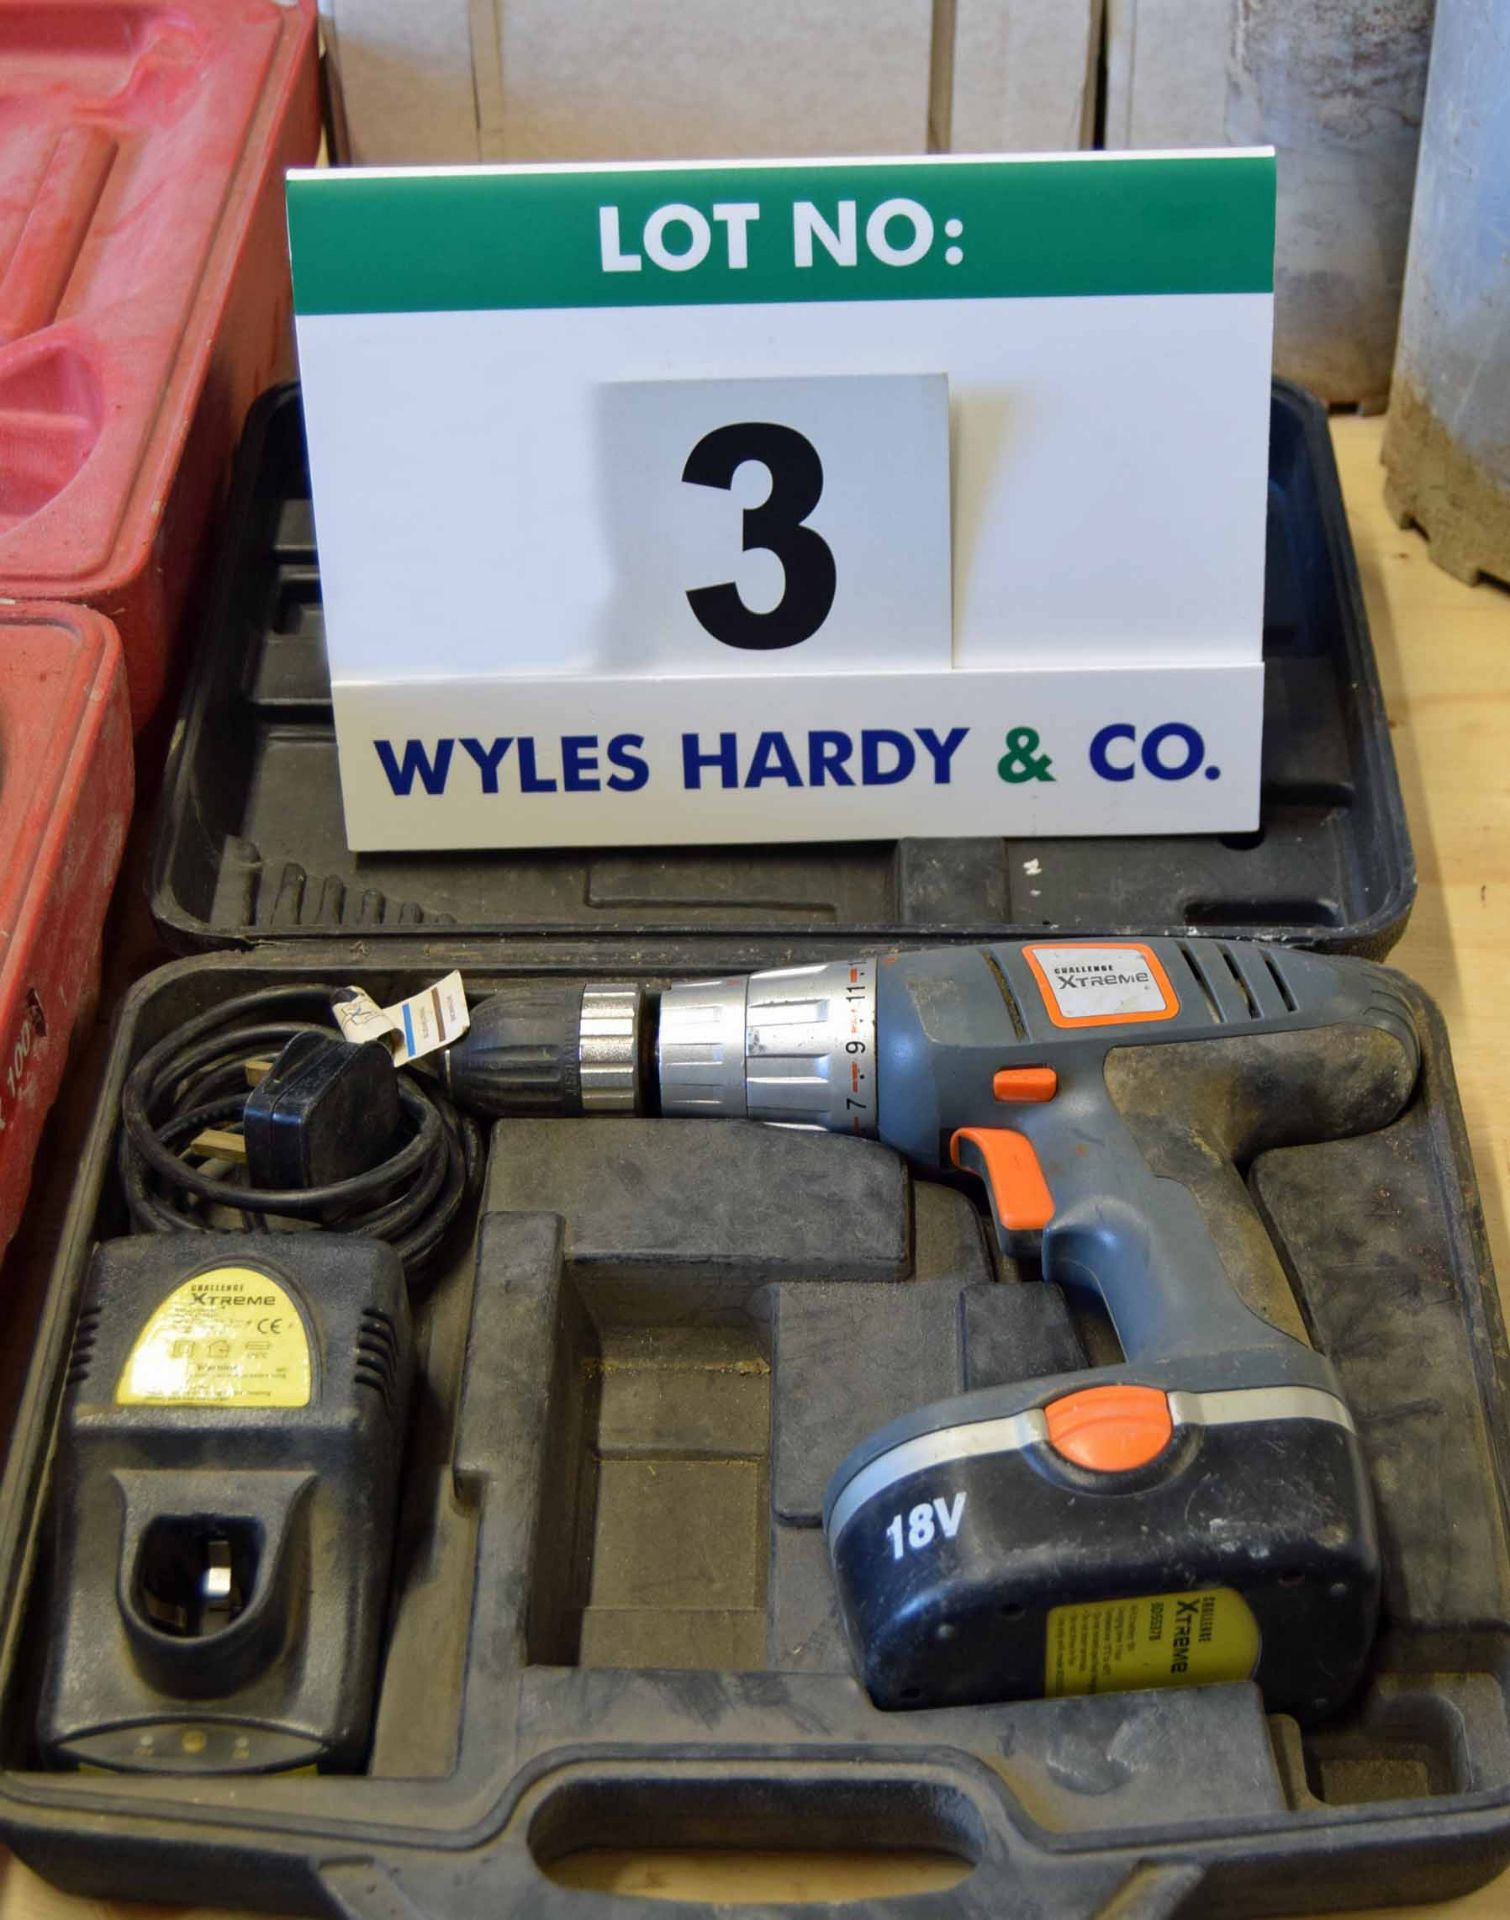 Lot 3 - A CHALLENGE Extreme 18V Cordless Rechargeable 2-Speed Variable Torque Reversible Hand Drill with